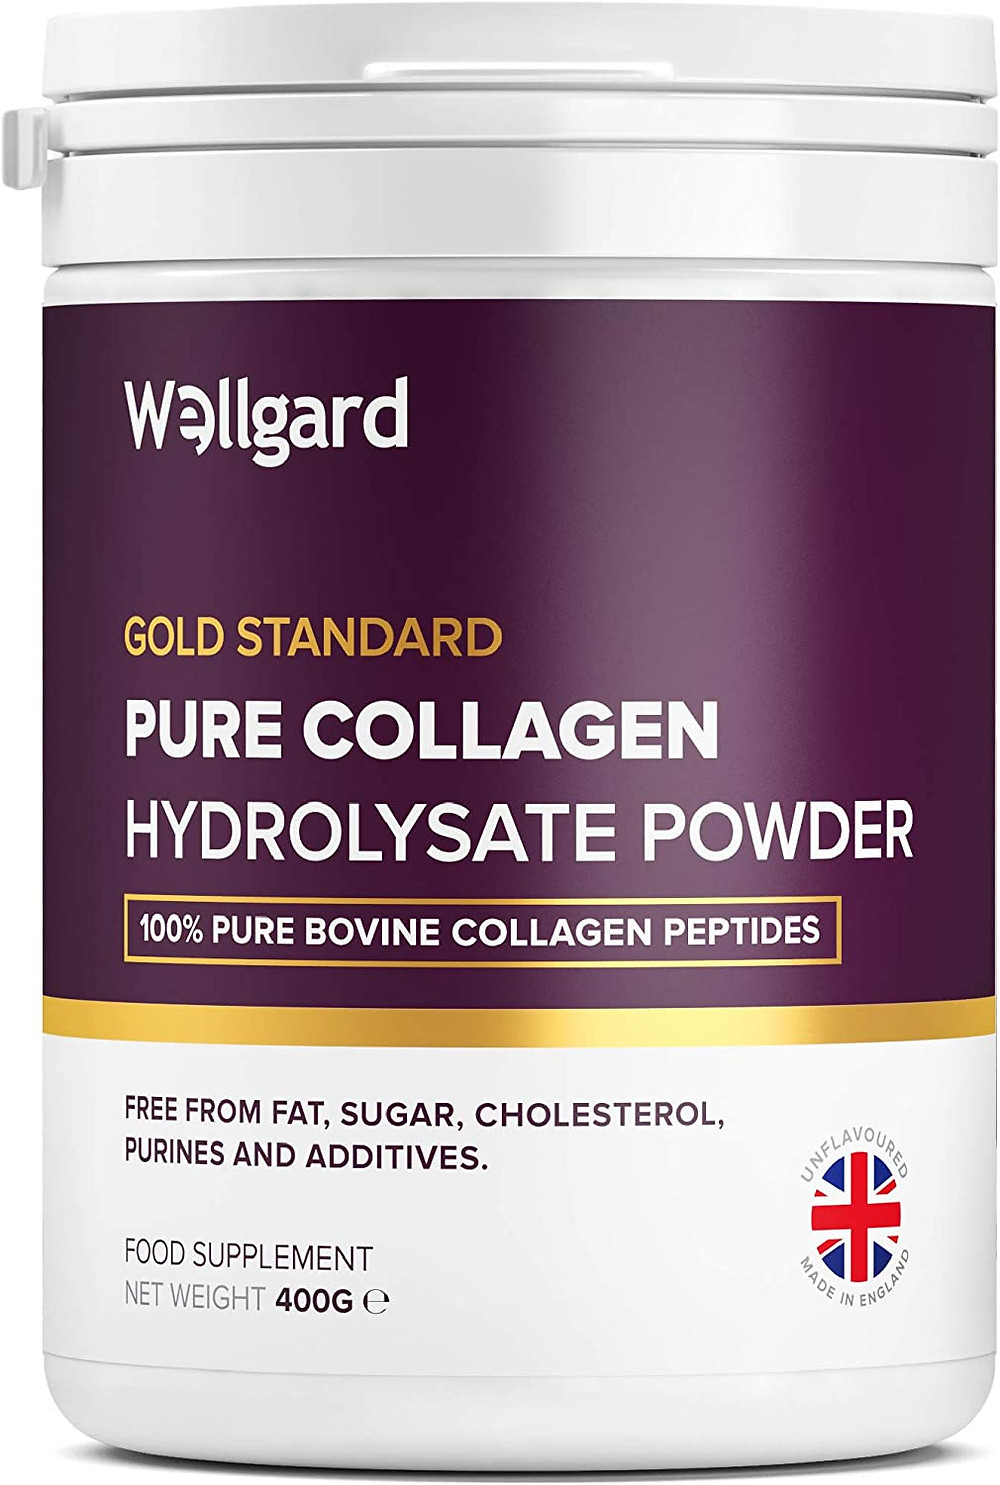 This is the No.1 best selling collagen supplement on the market. collagen is one of the main nutrients (Proteins) that keeps your skin looking smooth, healthy and fresh. However this eventually starts to decrease once you hit a certain age, which is why it is extremely important to use additional high quality collagen supplement that is listed above in order to keep your skin healthy and clear